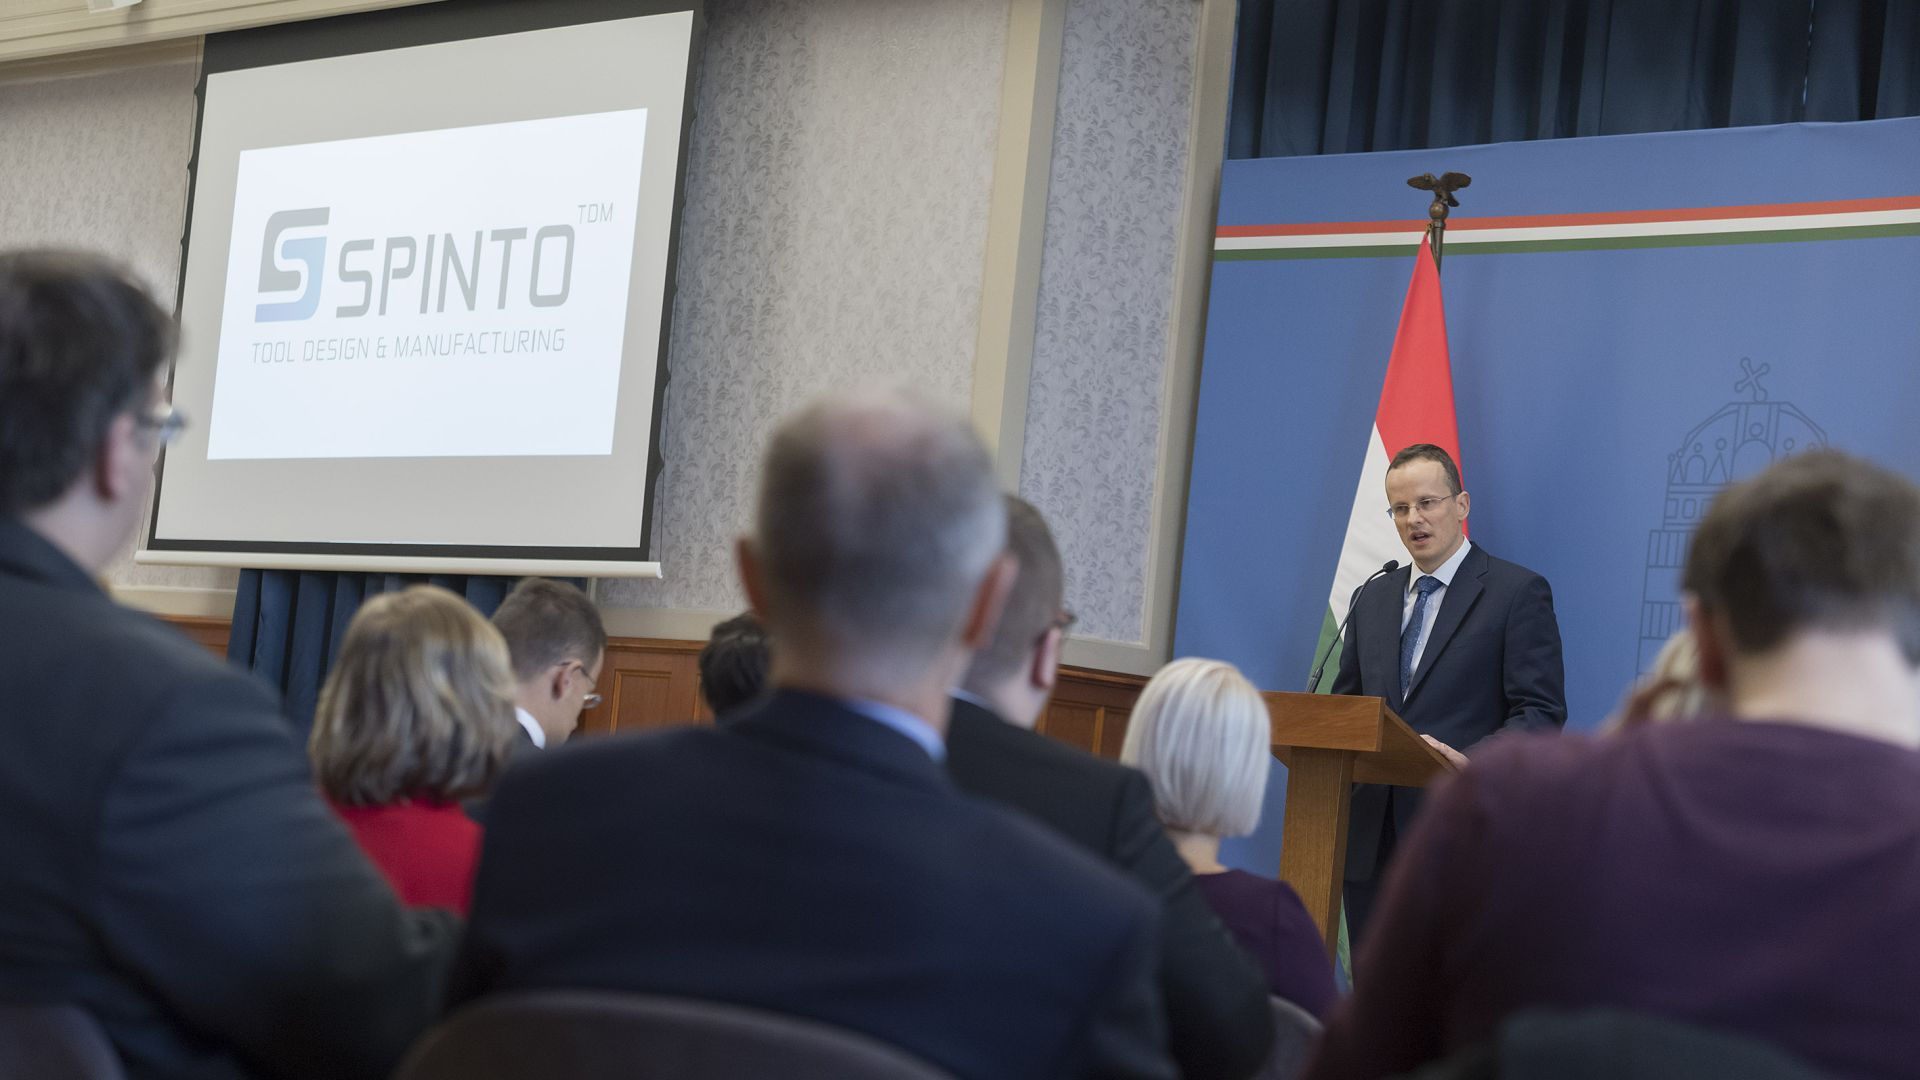 Spinto is to build its tool factory of regional importance in Miskolc